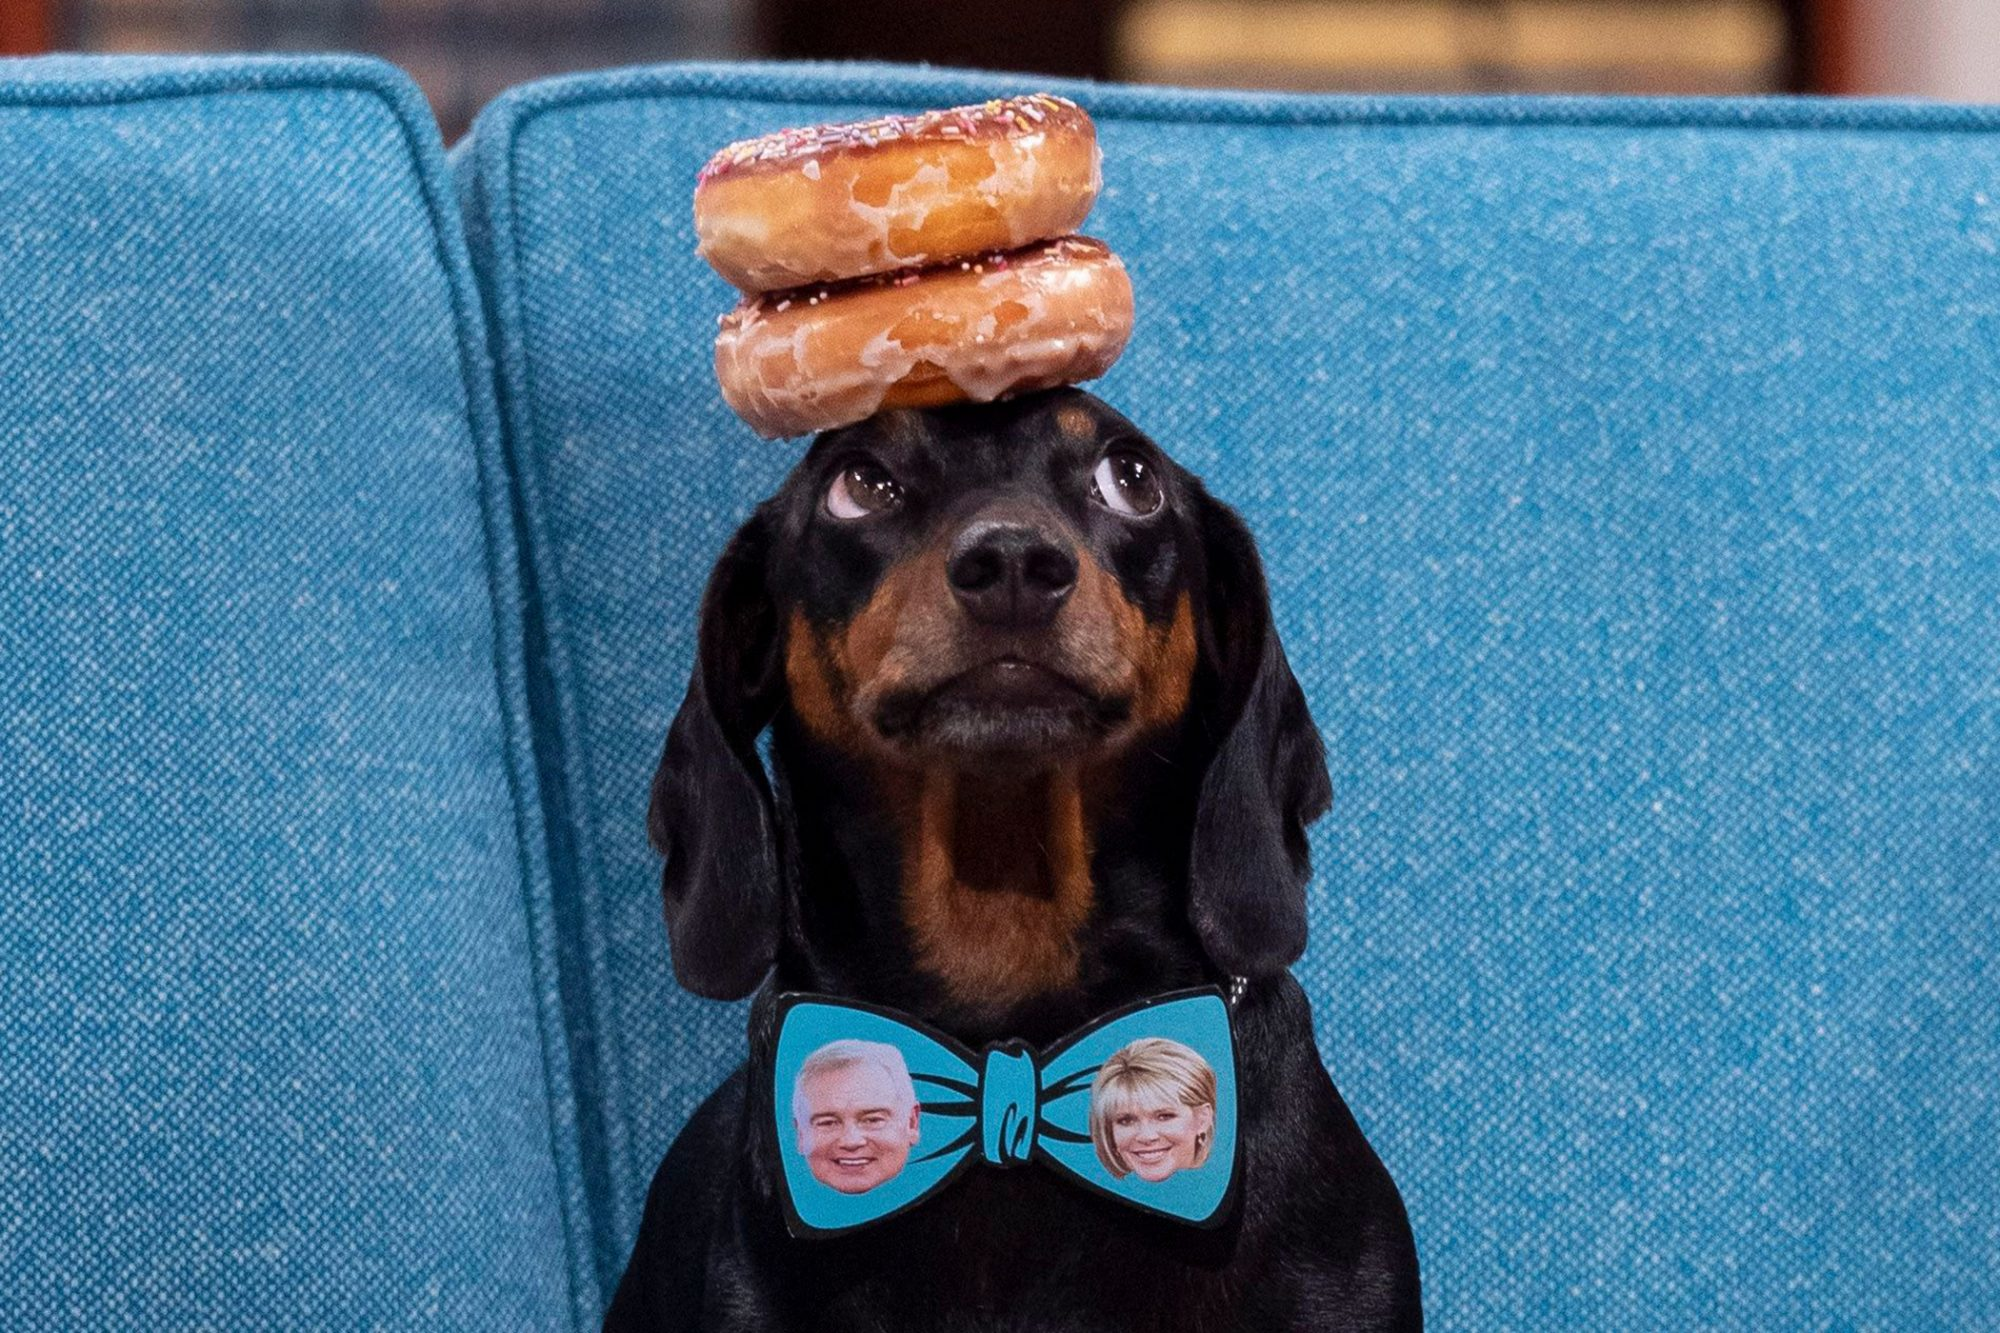 Harlso the Dachshund balancing two donuts on his head